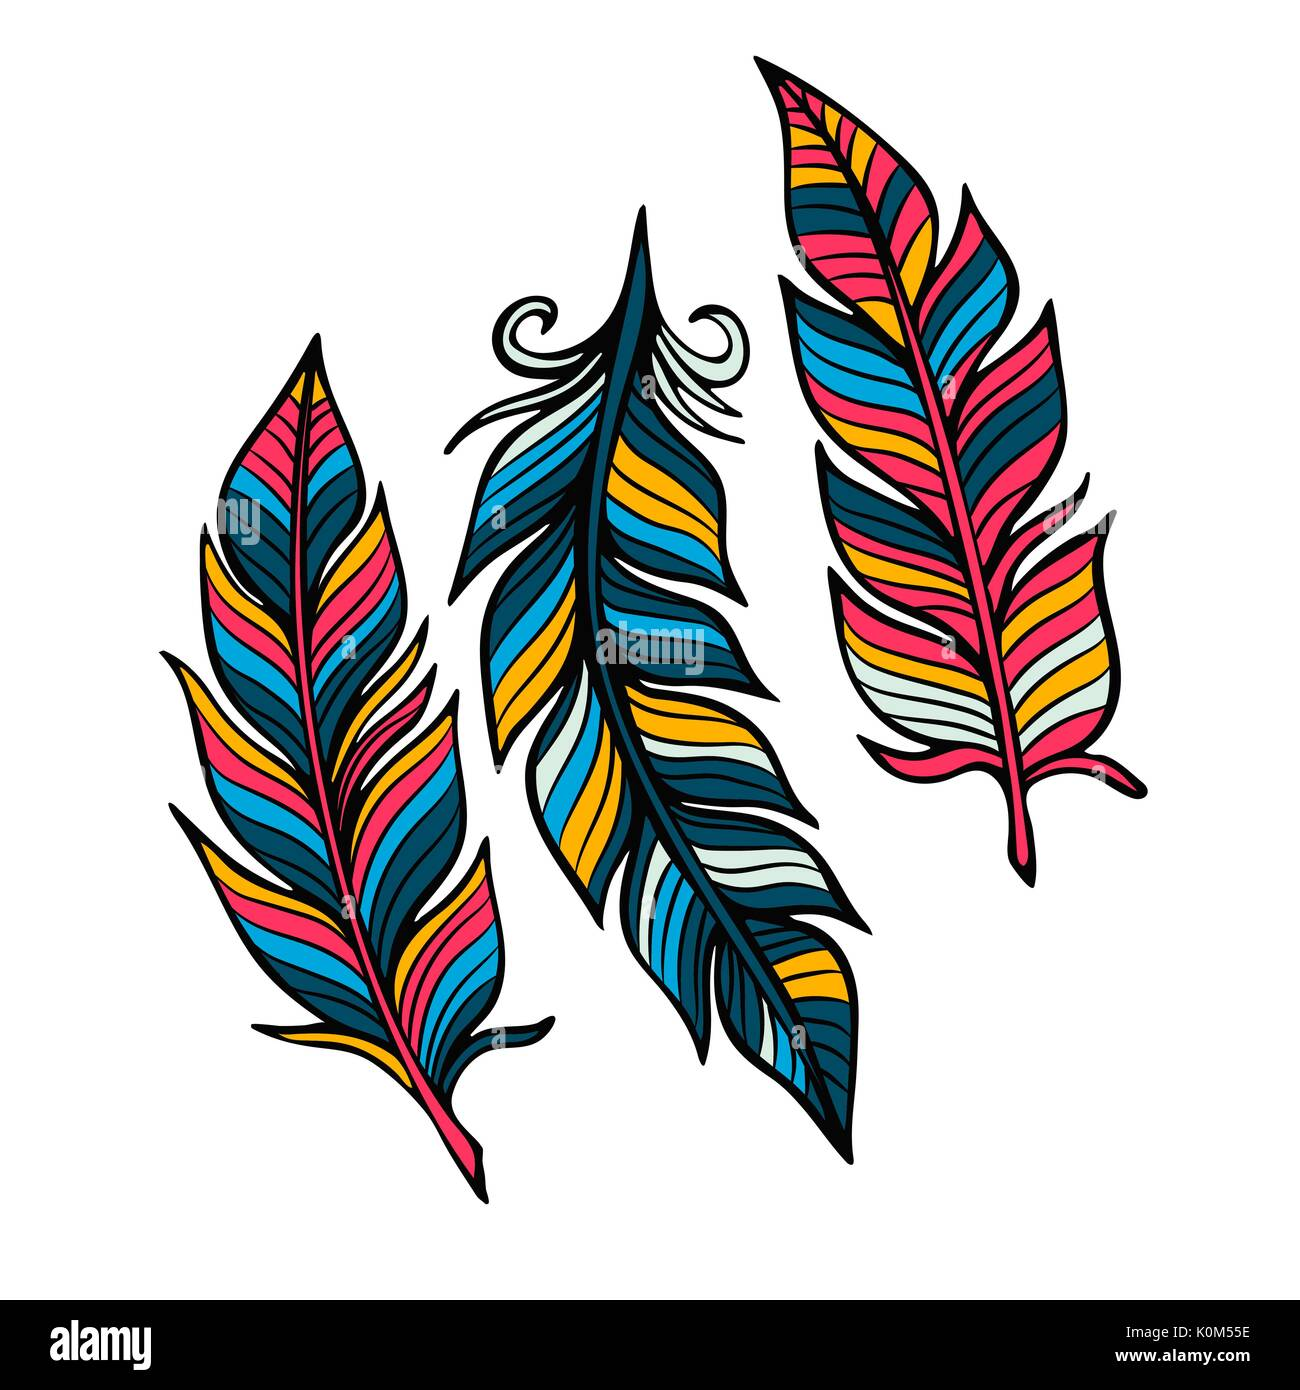 Feathers vector set in a flat style. Icons feathers isolated on a light background. - Stock Vector